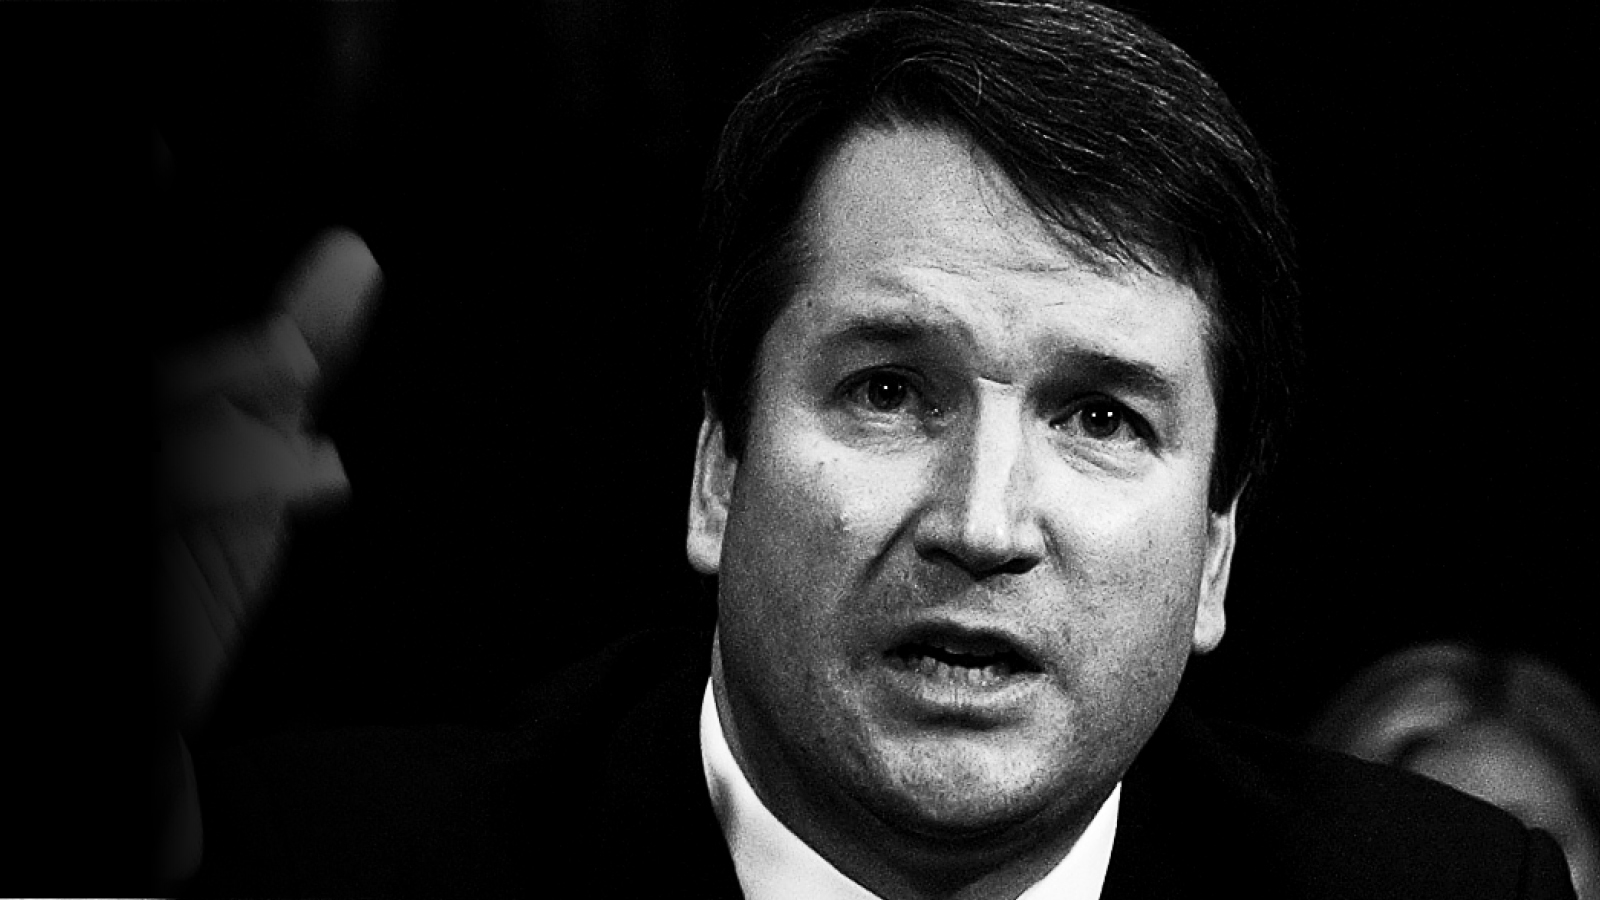 Liberal Democratic group seeks dirt on SCOTUS nominee Brett Kavanaugh